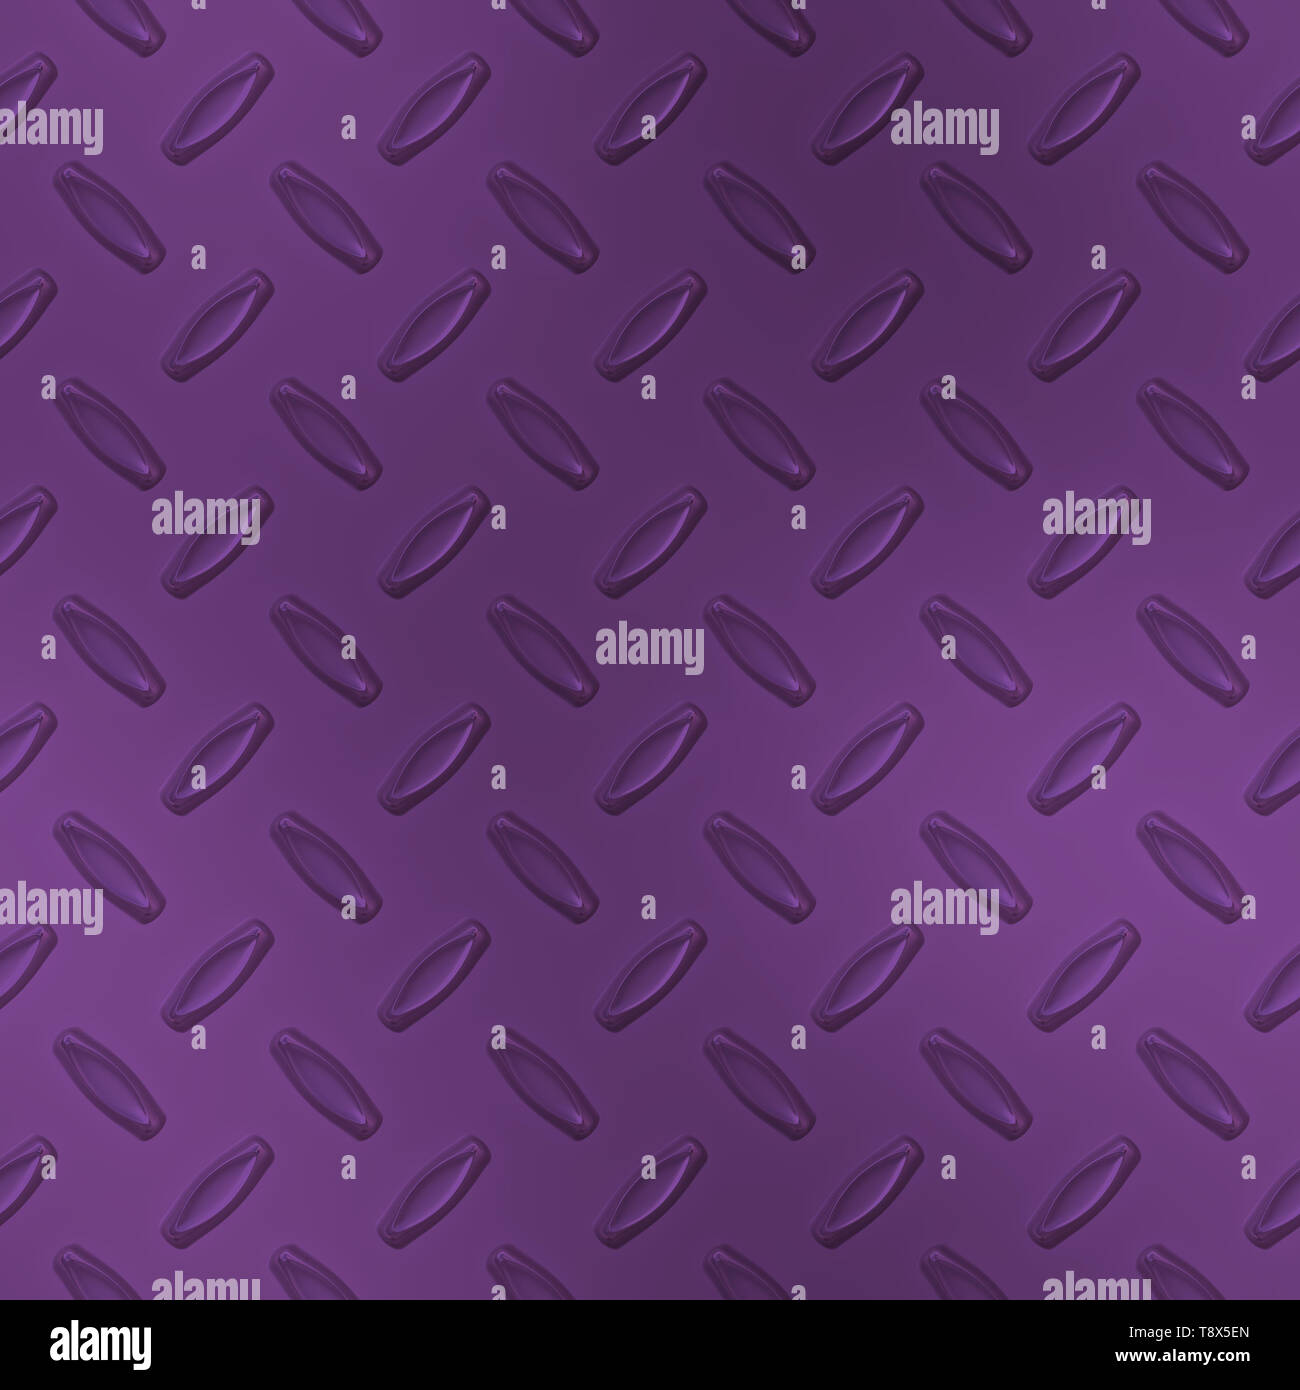 Purple Diamond Plate Metal Seamless Texture Tile - Stock Image